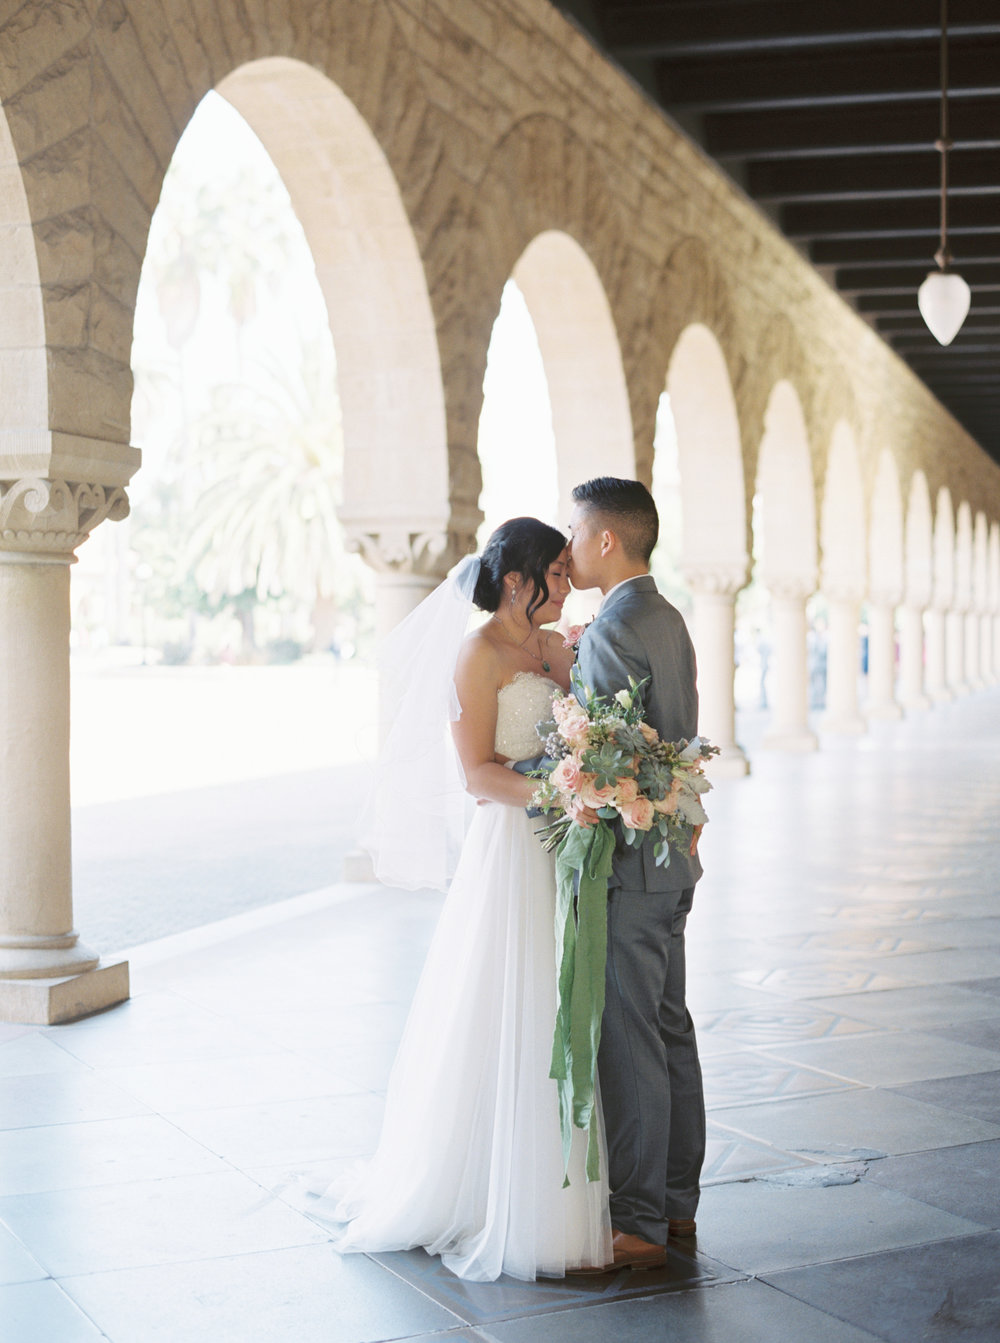 trynhphoto_wedding_photography_Standford_PaloAlto_SF_BayArea_Destination_OC_HA-66.jpg